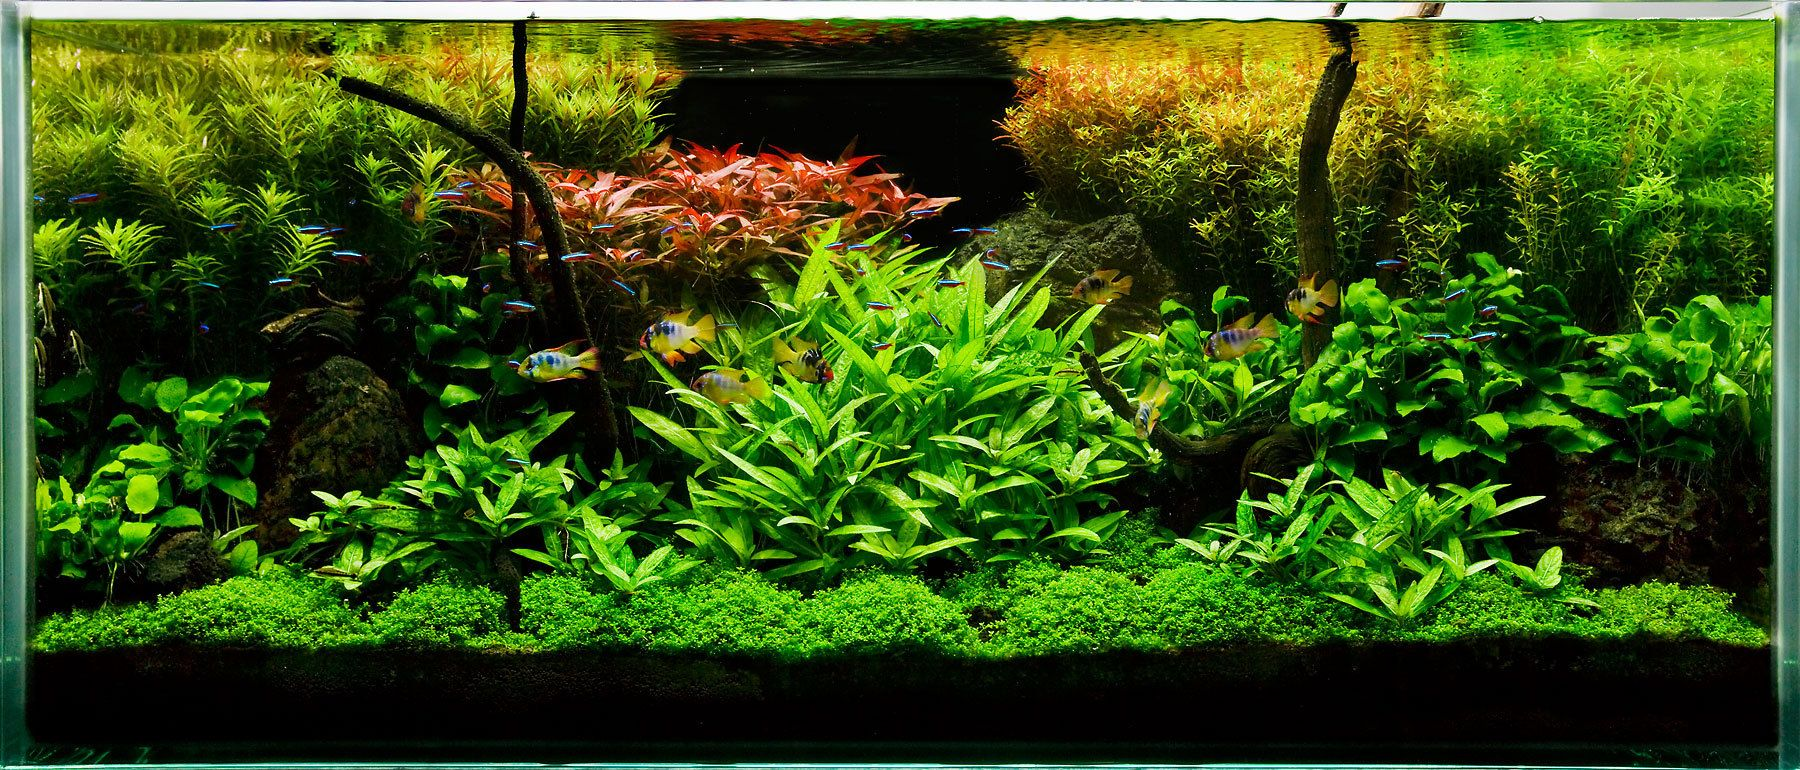 A Planted Aquarium for Wild Rams